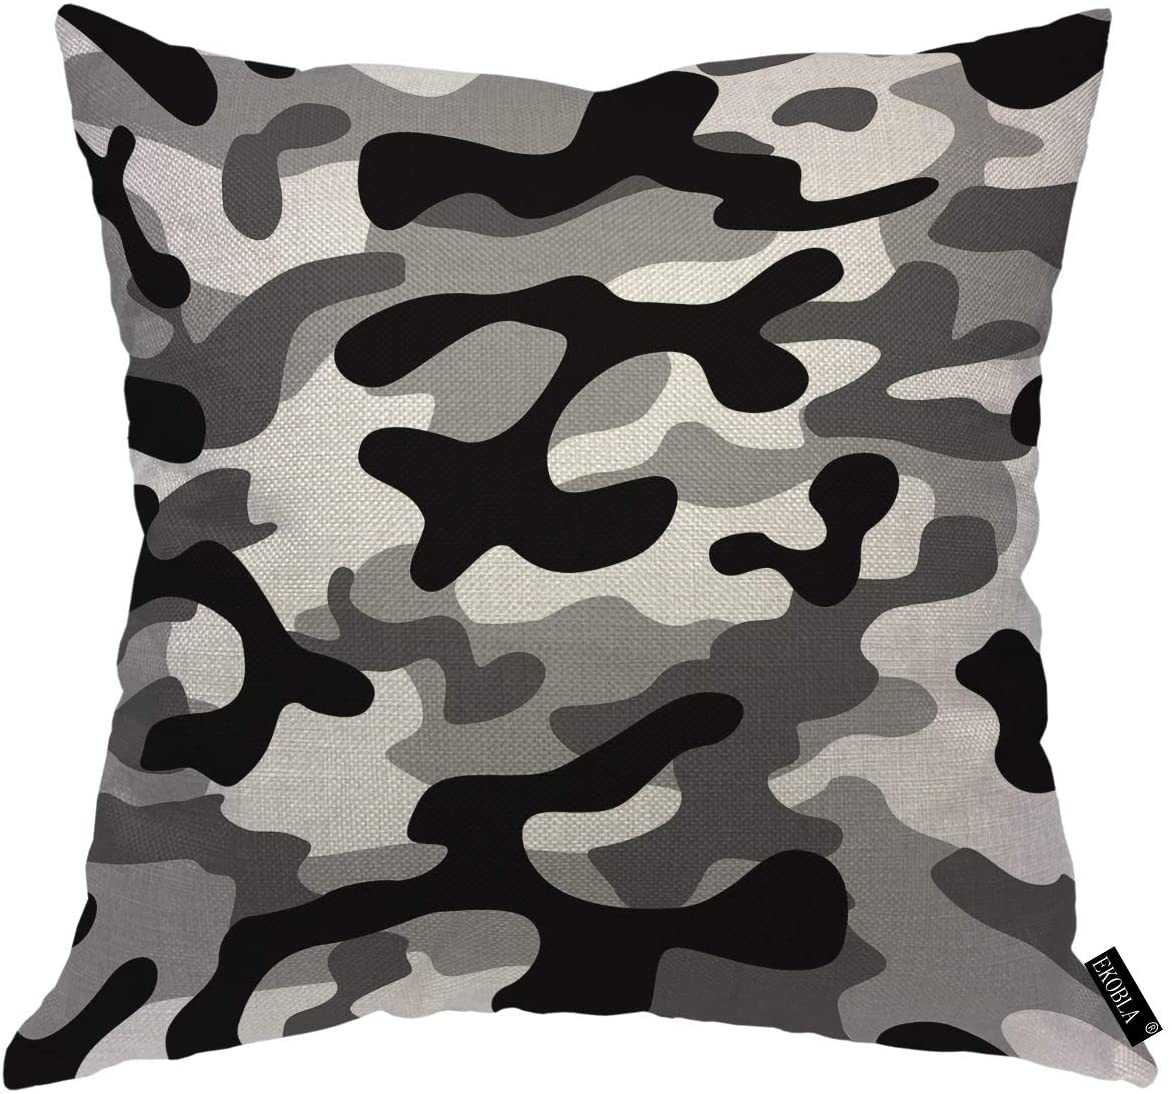 EKOBLA Gray Camouflage Throw Pillow Covers Modern Military Navy Fashion Uniform Classic Hunting Leaves Cozy Square Cushion Case for Men Women Boys Girls Home Decor Cotton Linen 18x18 Inch